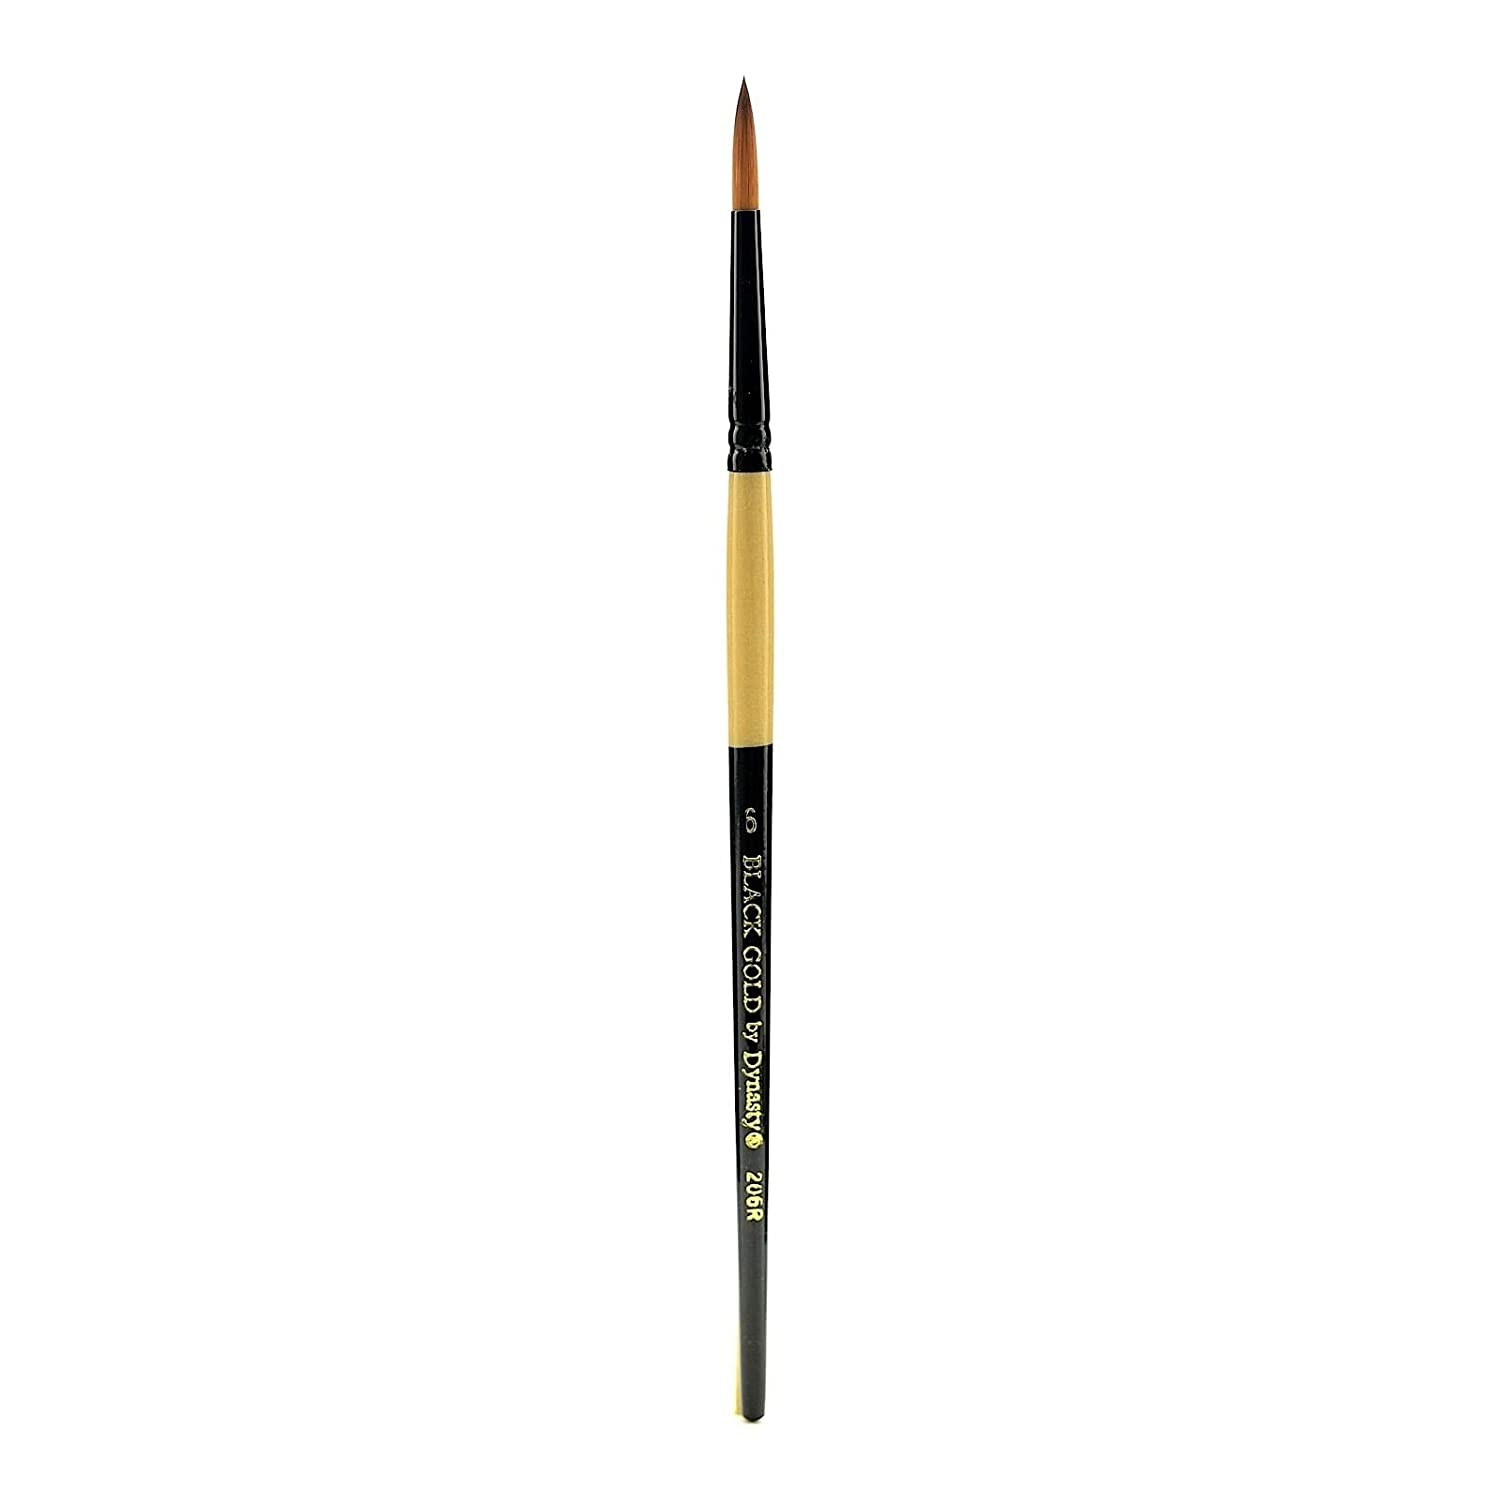 Dynasty Black Gold Series Synthetic Brushes Short Handle 6 round